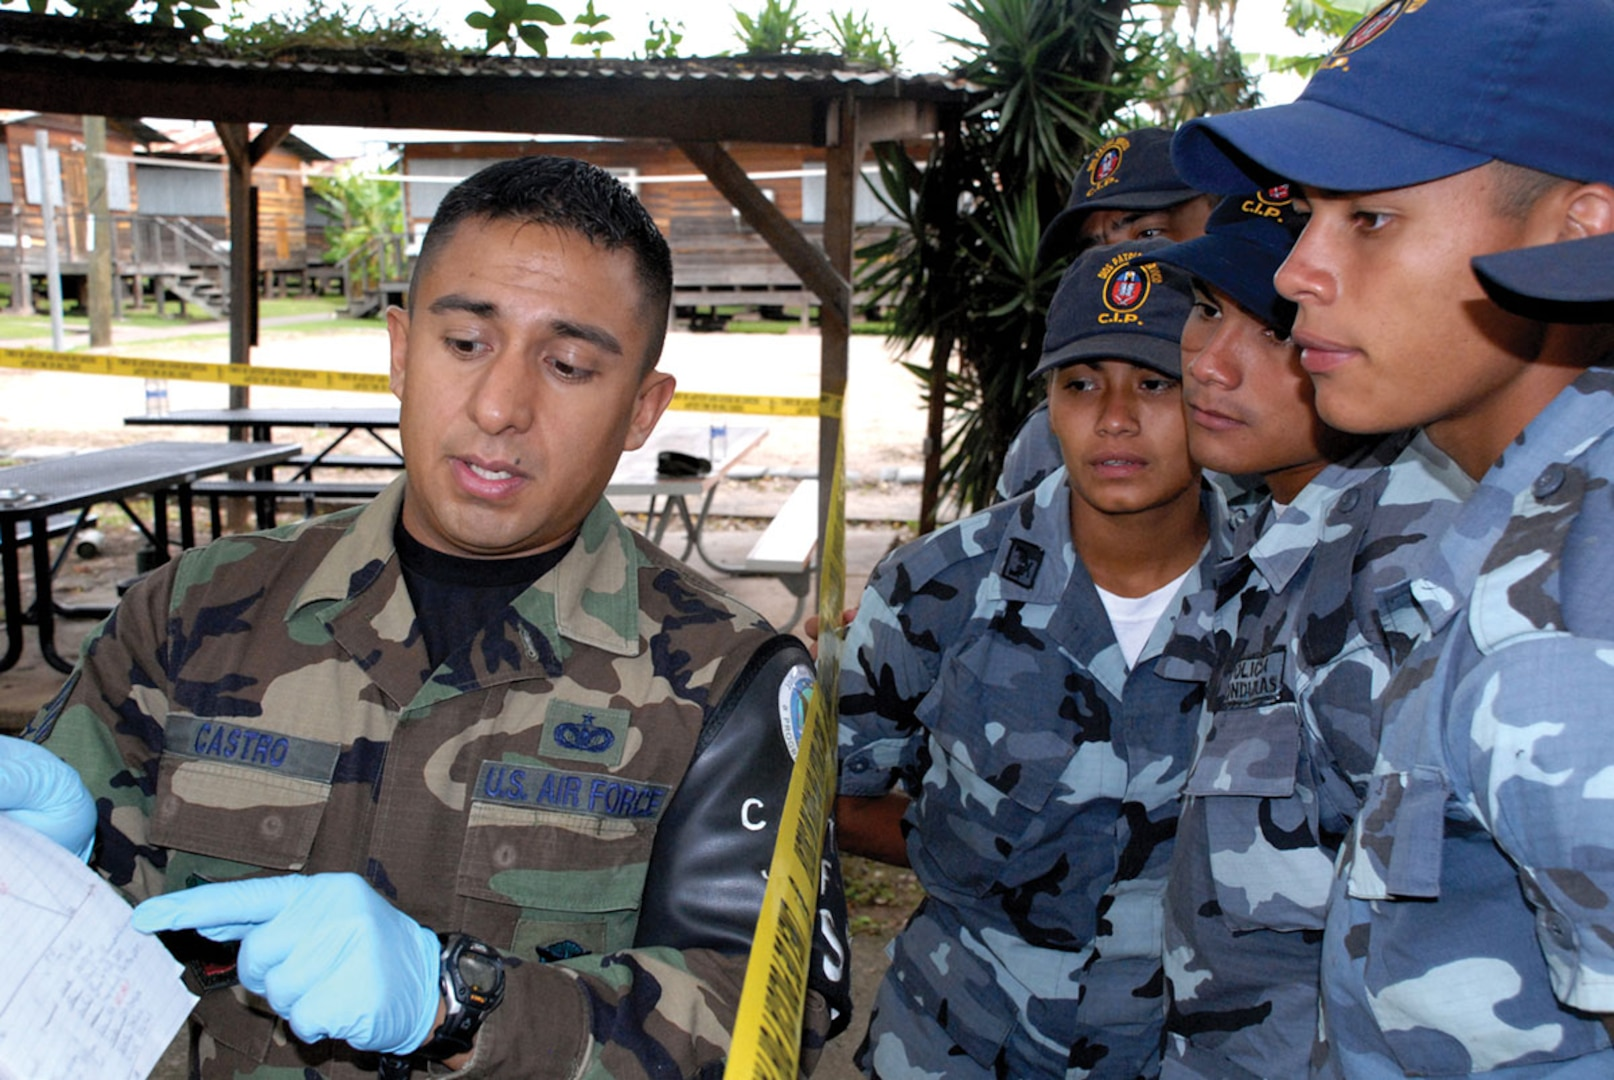 Staff Sgt. Edgar Castro, joint security forces, explains crime scene processing paperwork to students from the La Paz Police Academy during a training course here. The crime scene processing class is one in a series of classes taught this year, with other lessons involving handcuff procedures, high-risk traffic stops and riot control. (U.S. Air Force photo/Tech. Sgt. Sonny Cohrs)